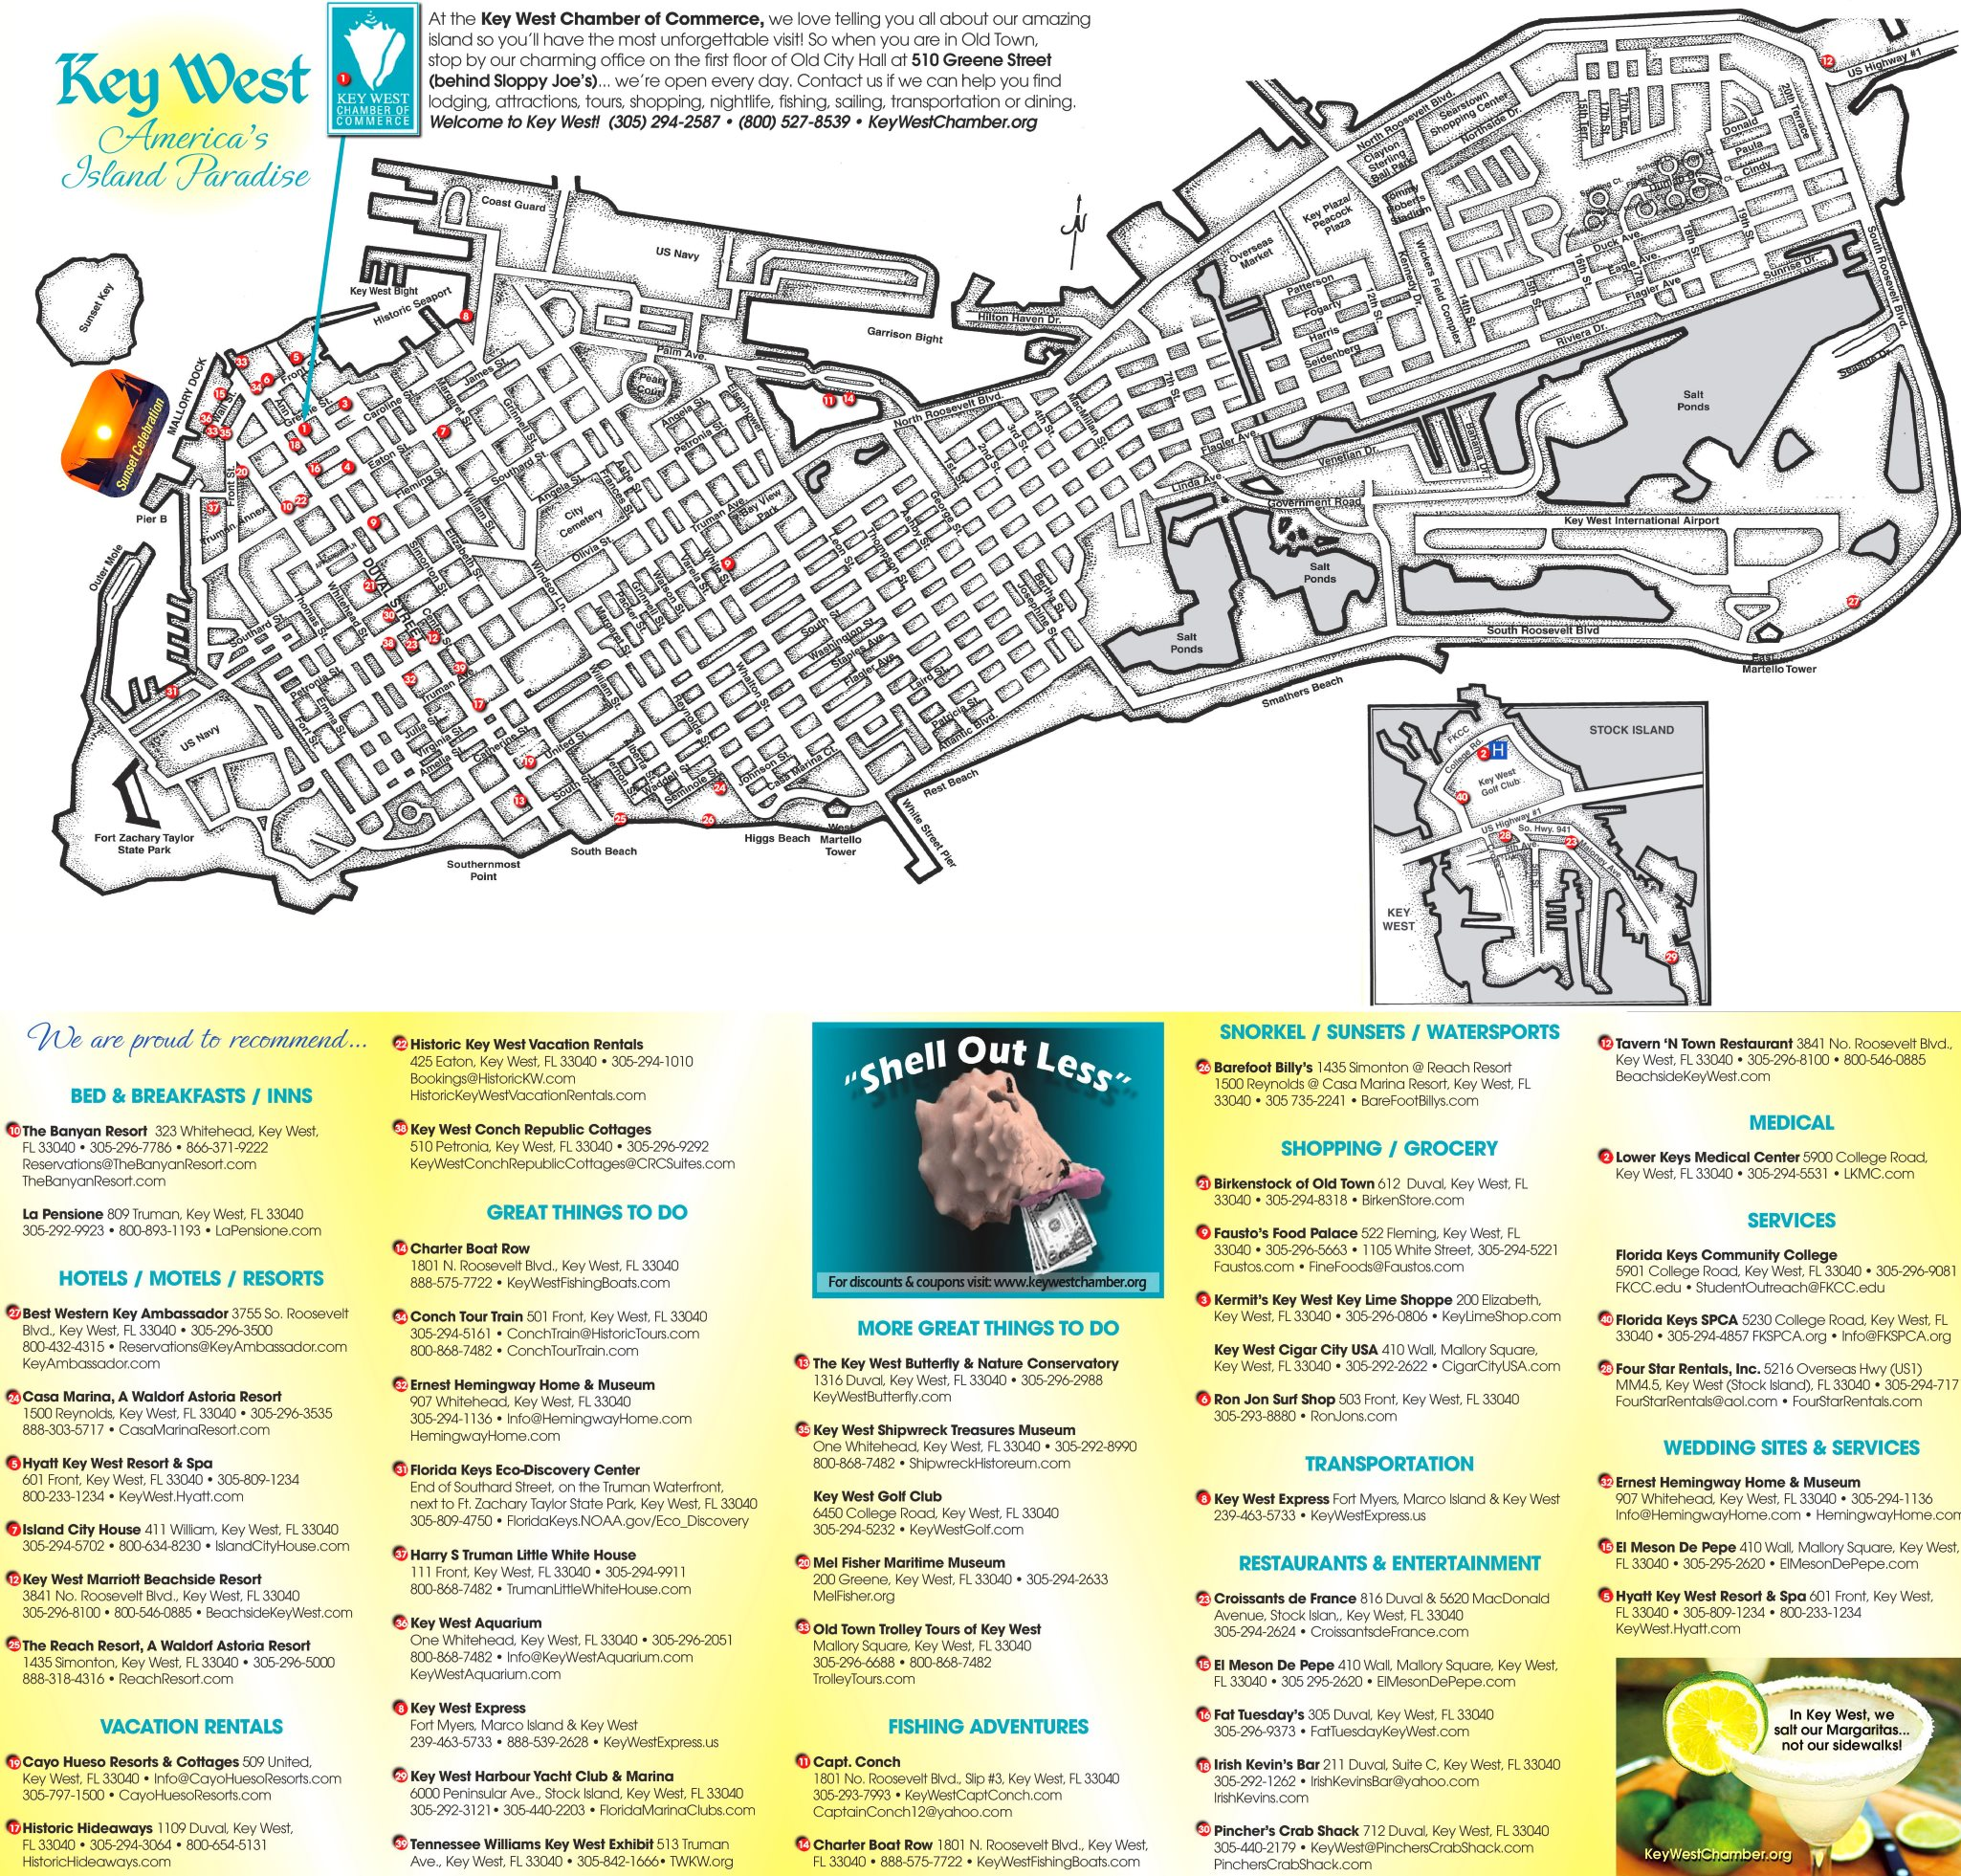 Hotel Map Of Key West Florida Key West hotels and sightseeings map